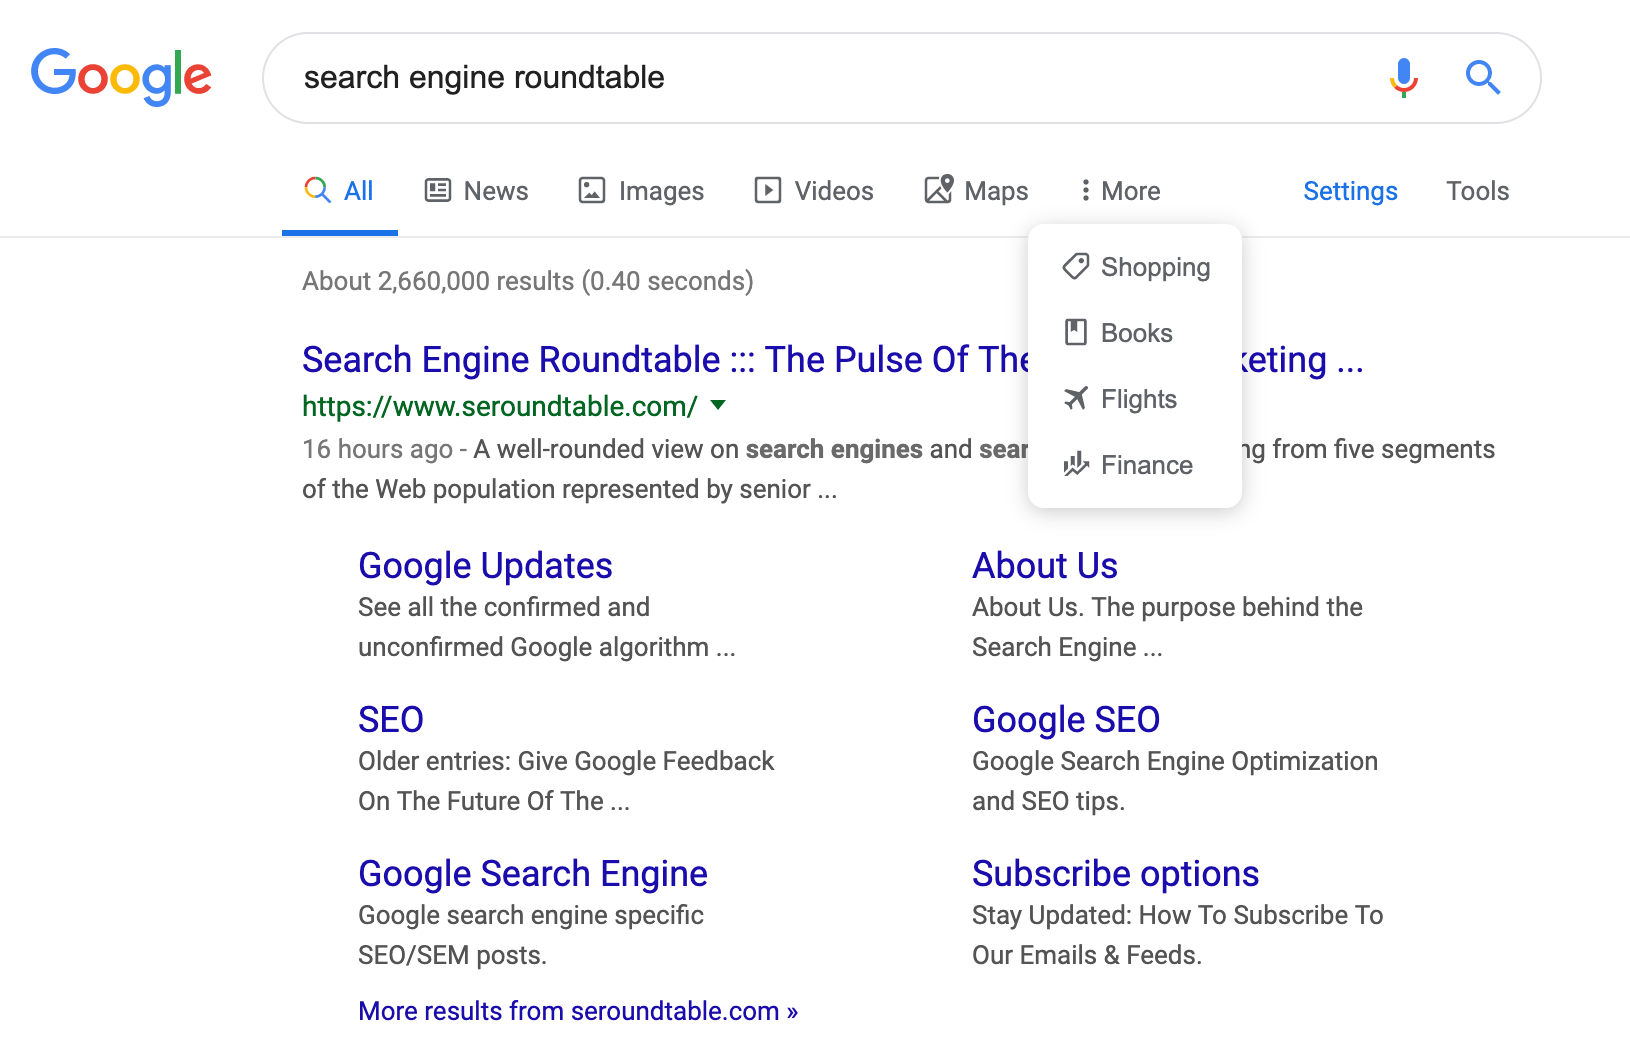 Google Launches New Search Menu Bar With Icons